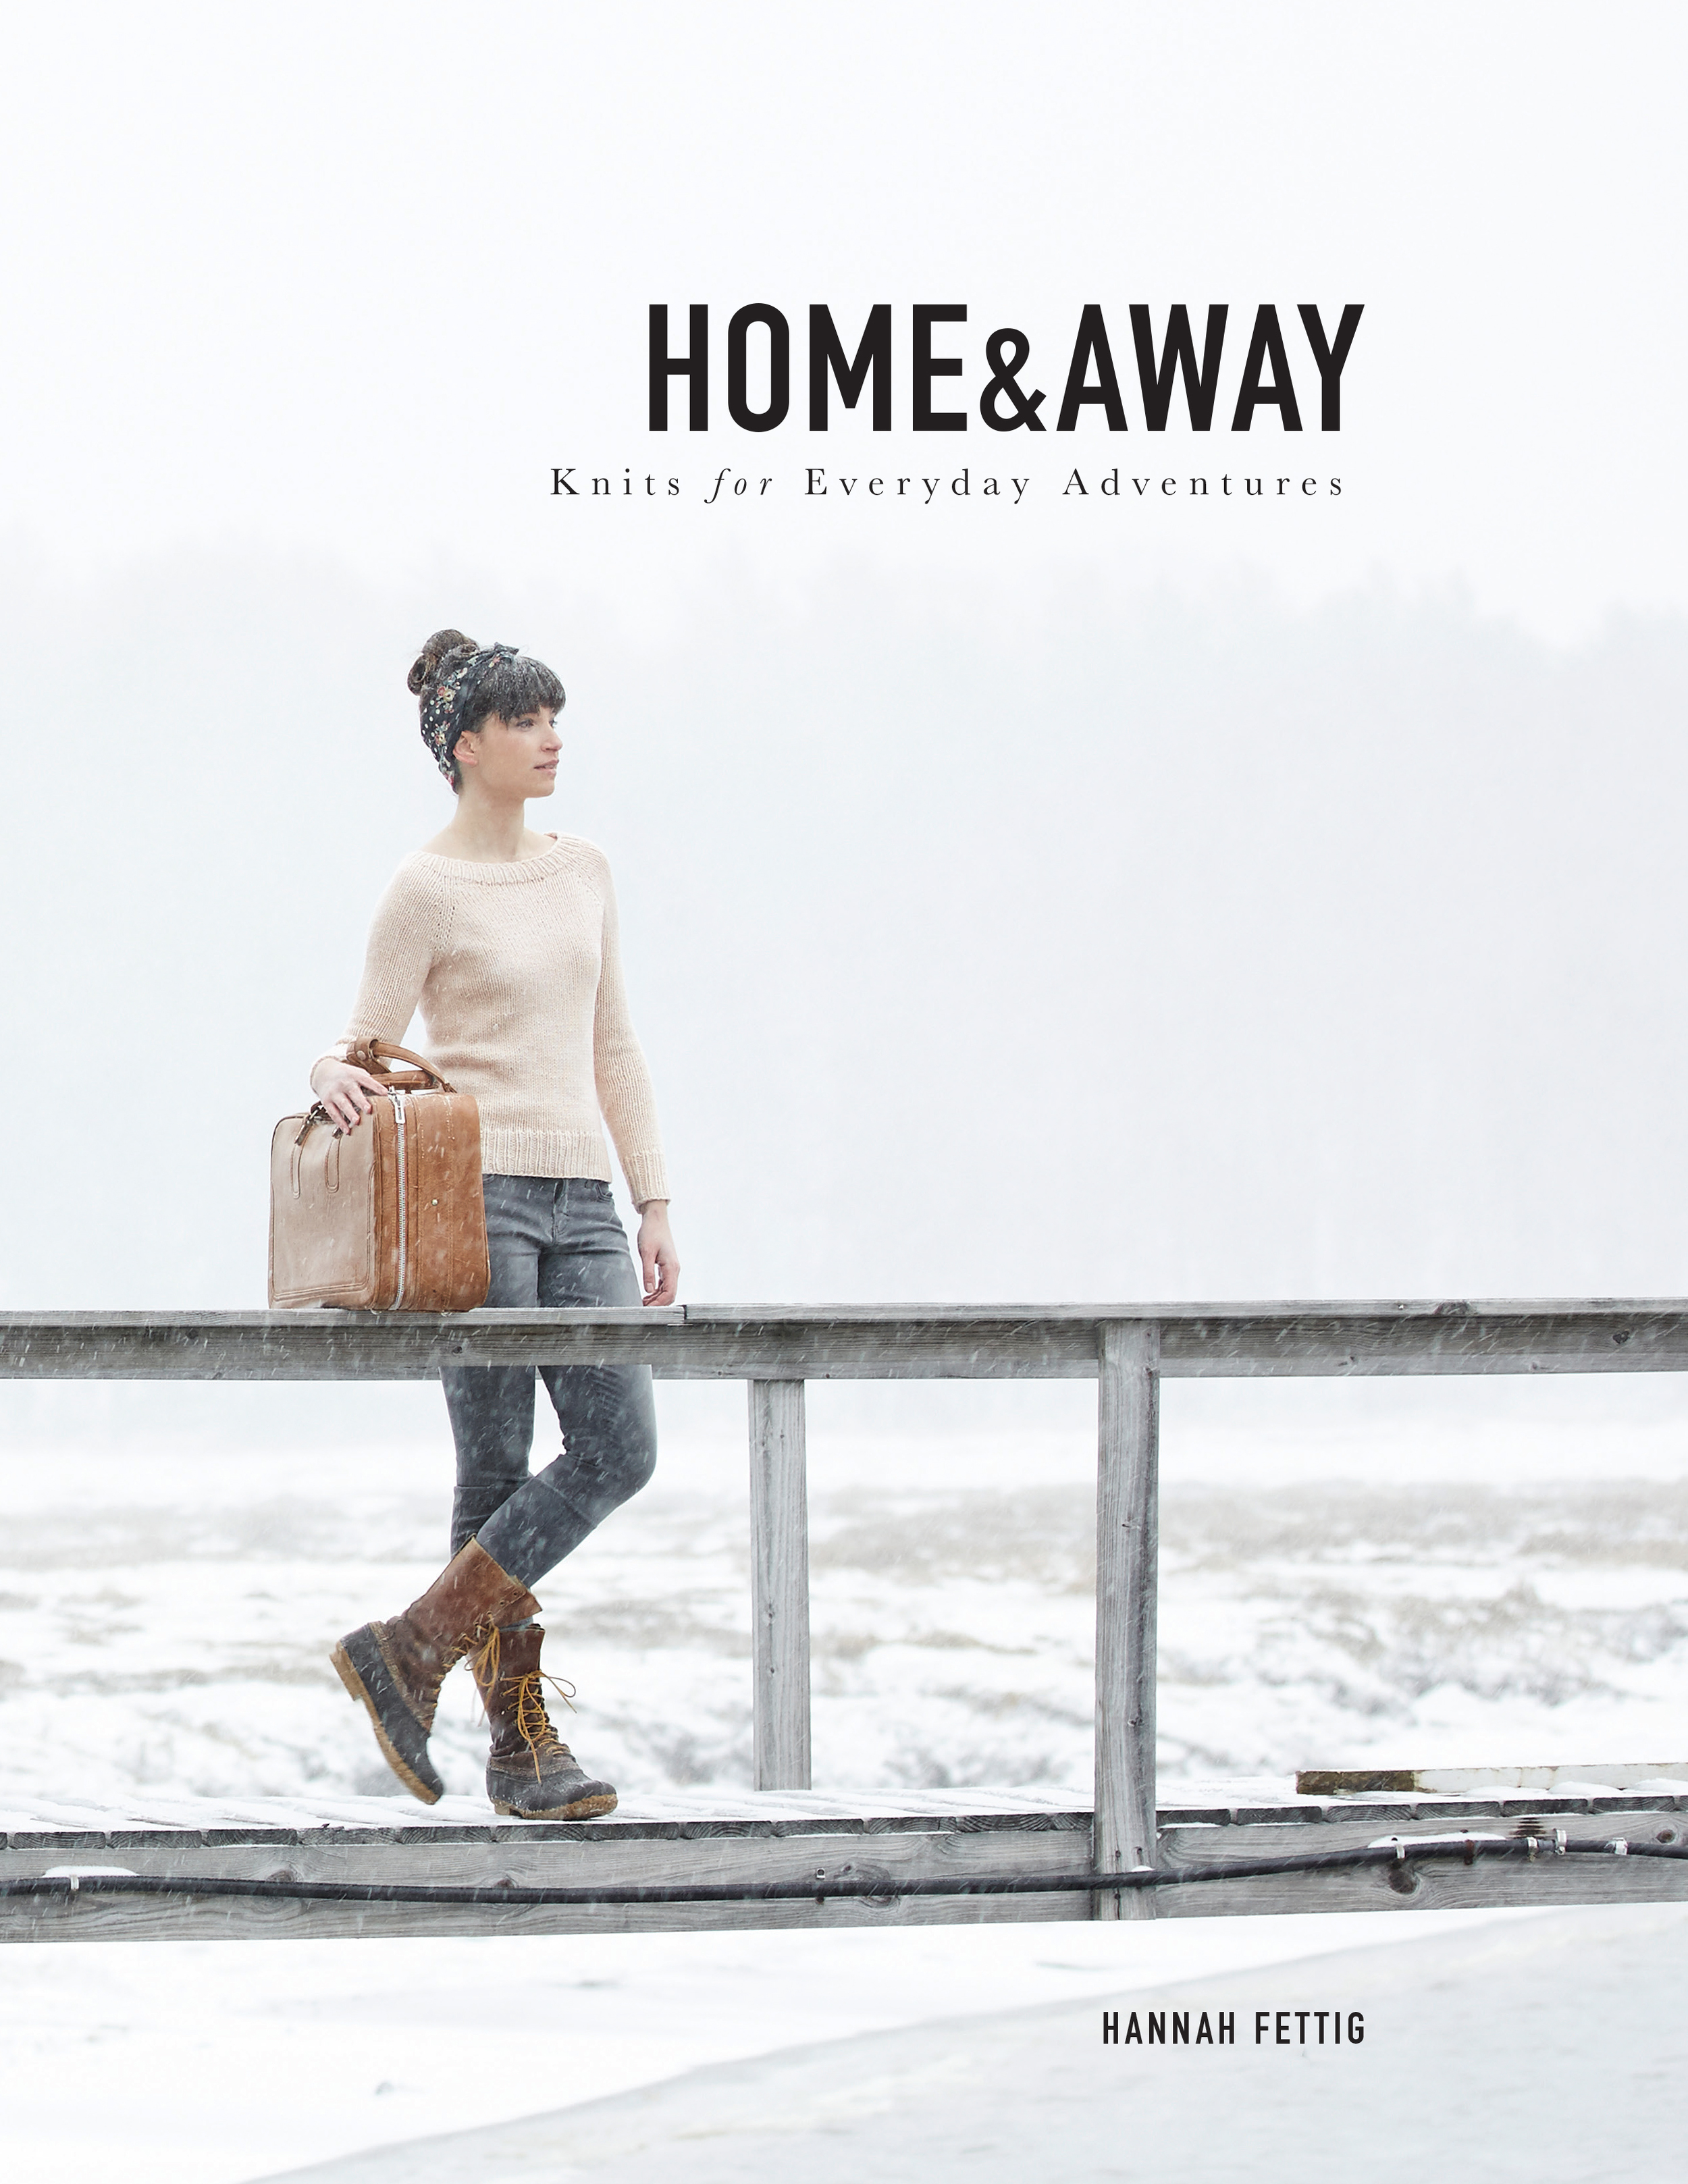 Home and Away by Hannah Fettig